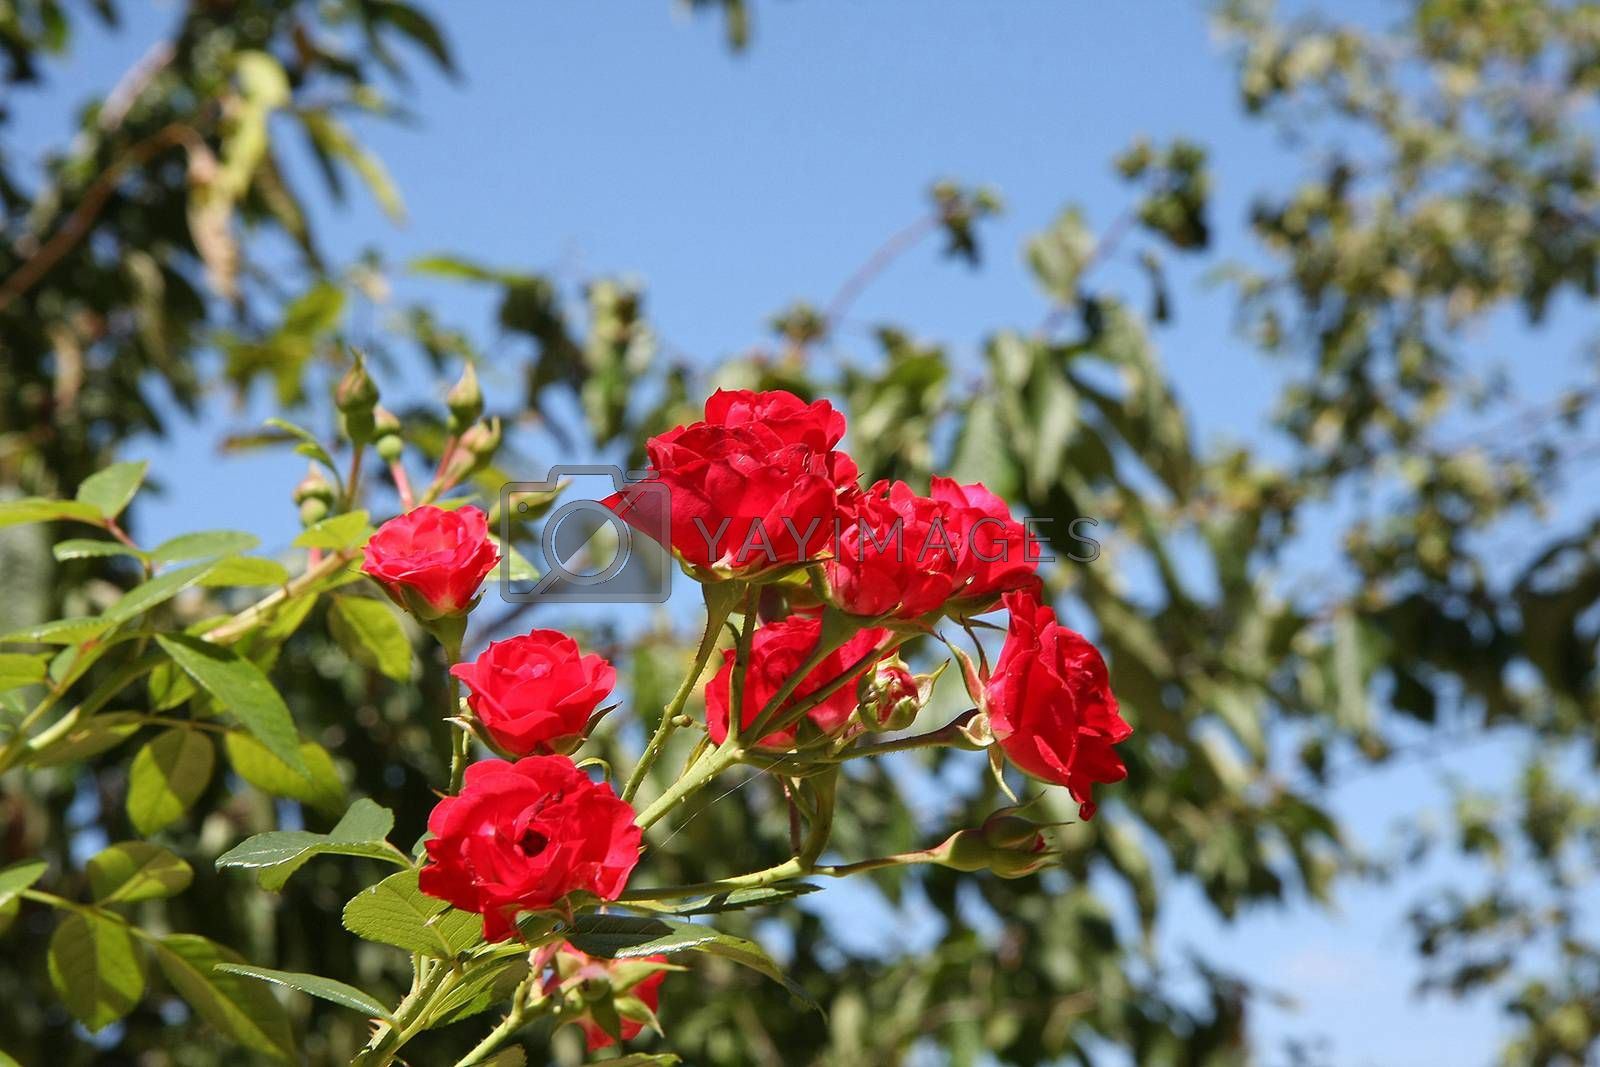 Close up of red rose in village garden